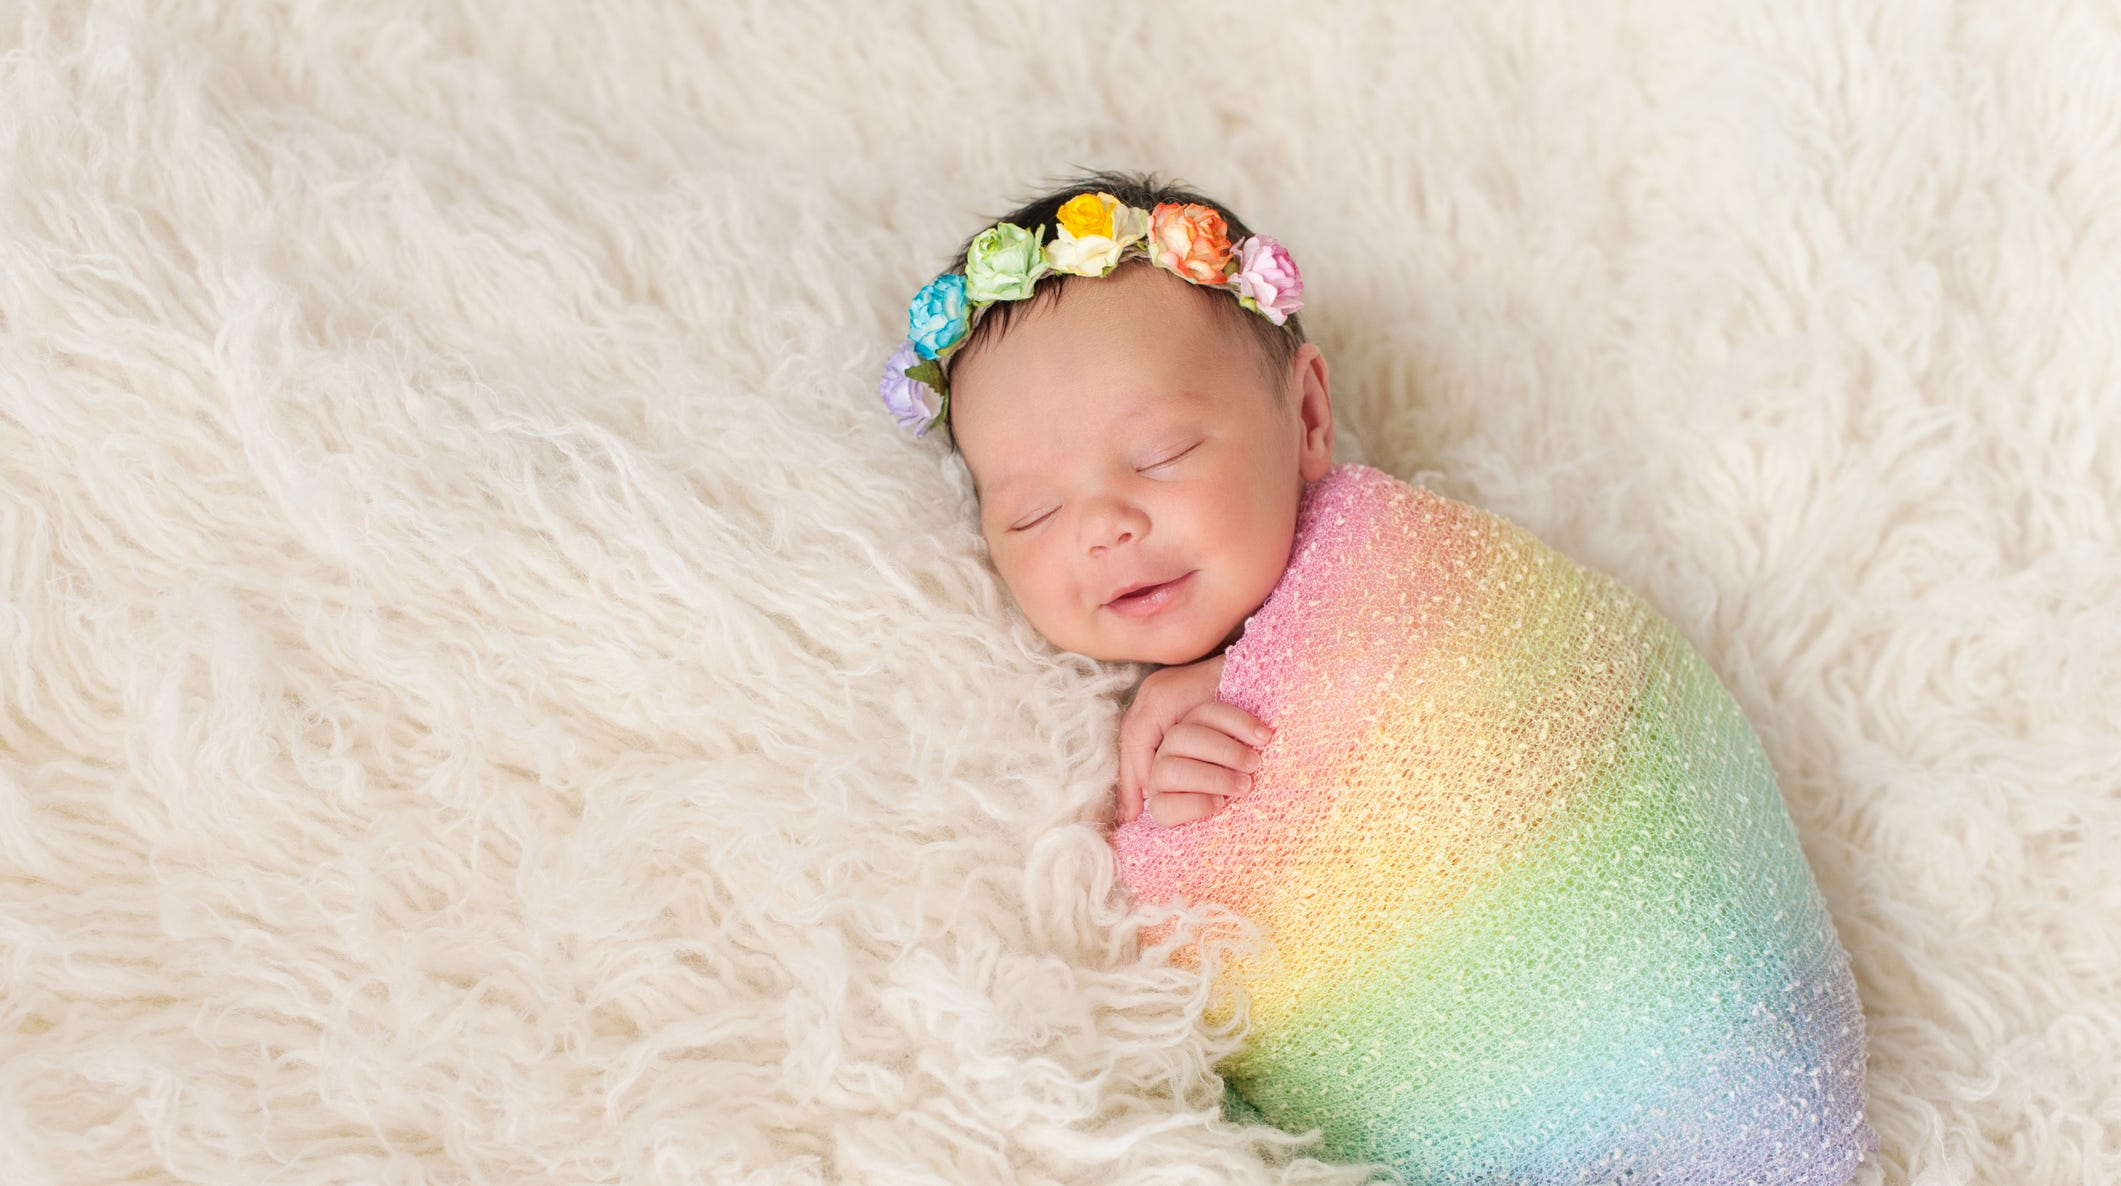 Find out the most popular girl baby names in your state